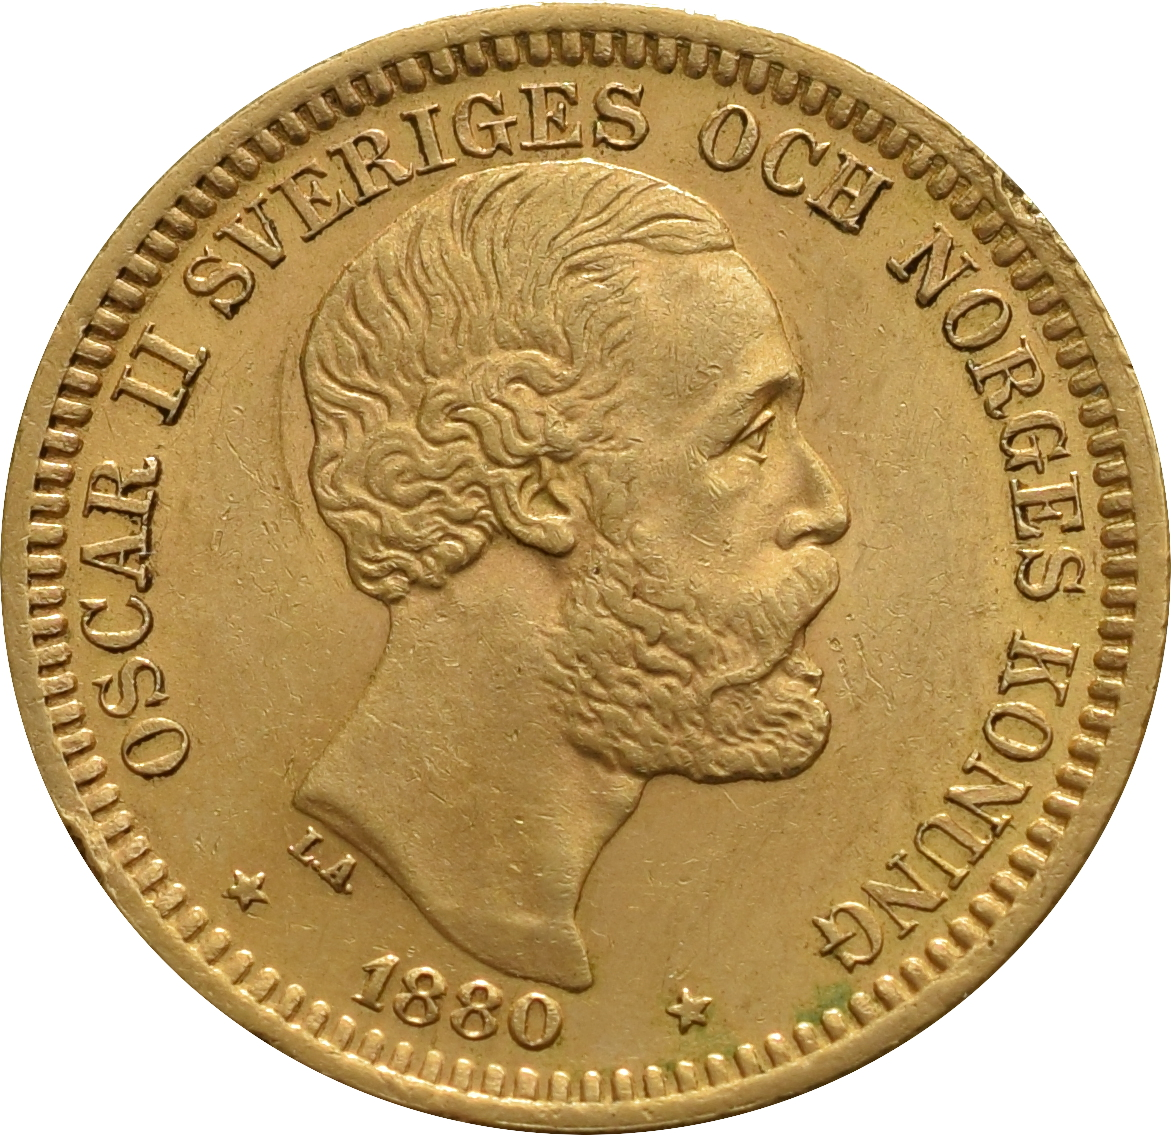 20 Kronor Swedish gold coin, from Bullion by Post, the UK ...